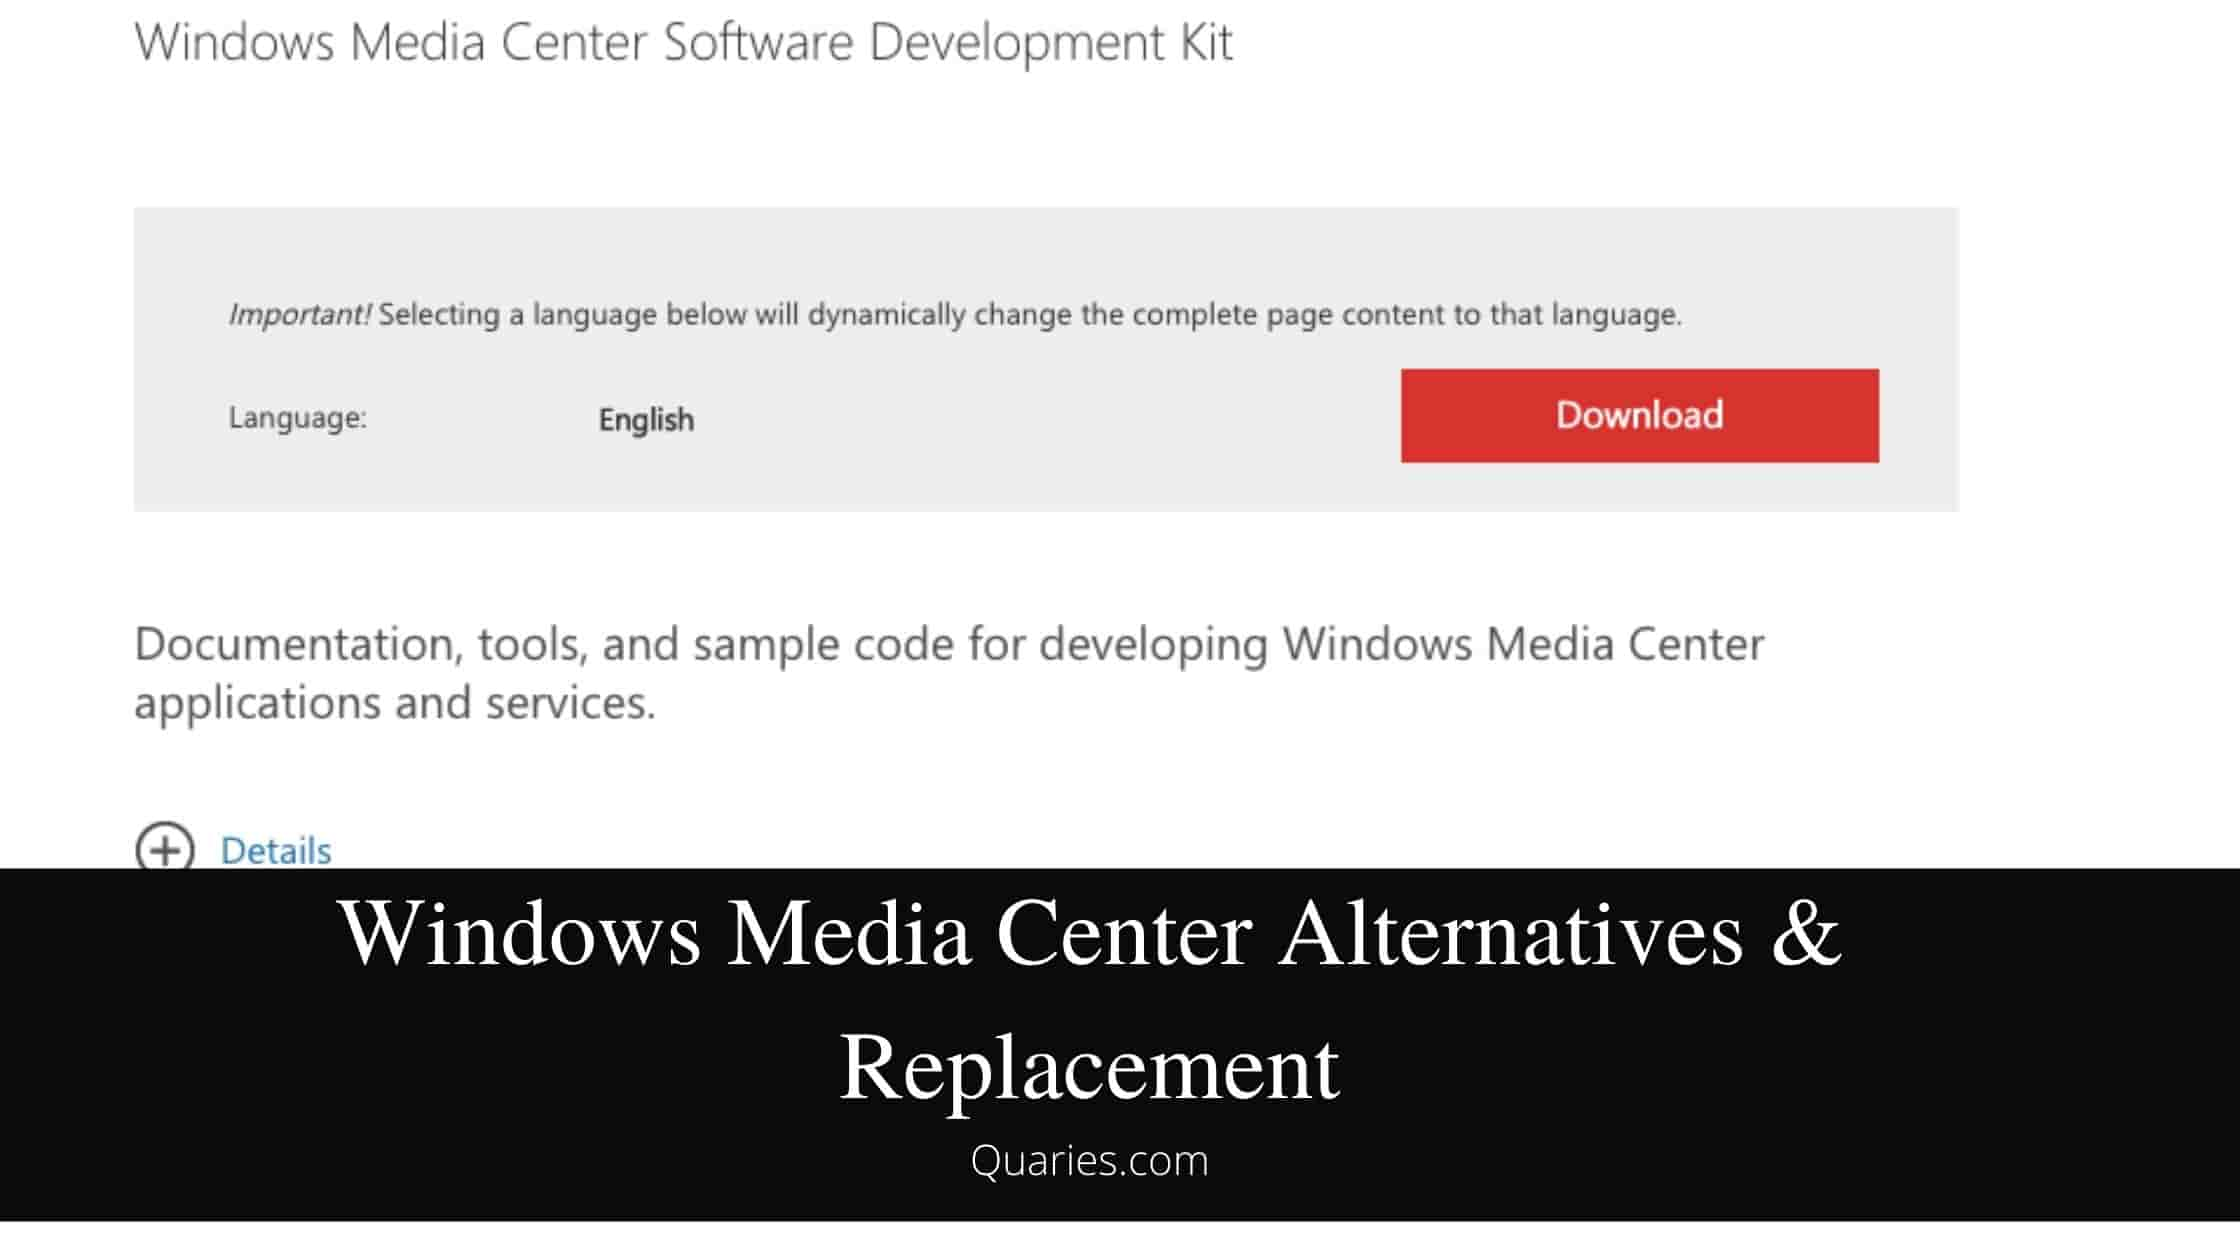 Windows Media Center Alternatives